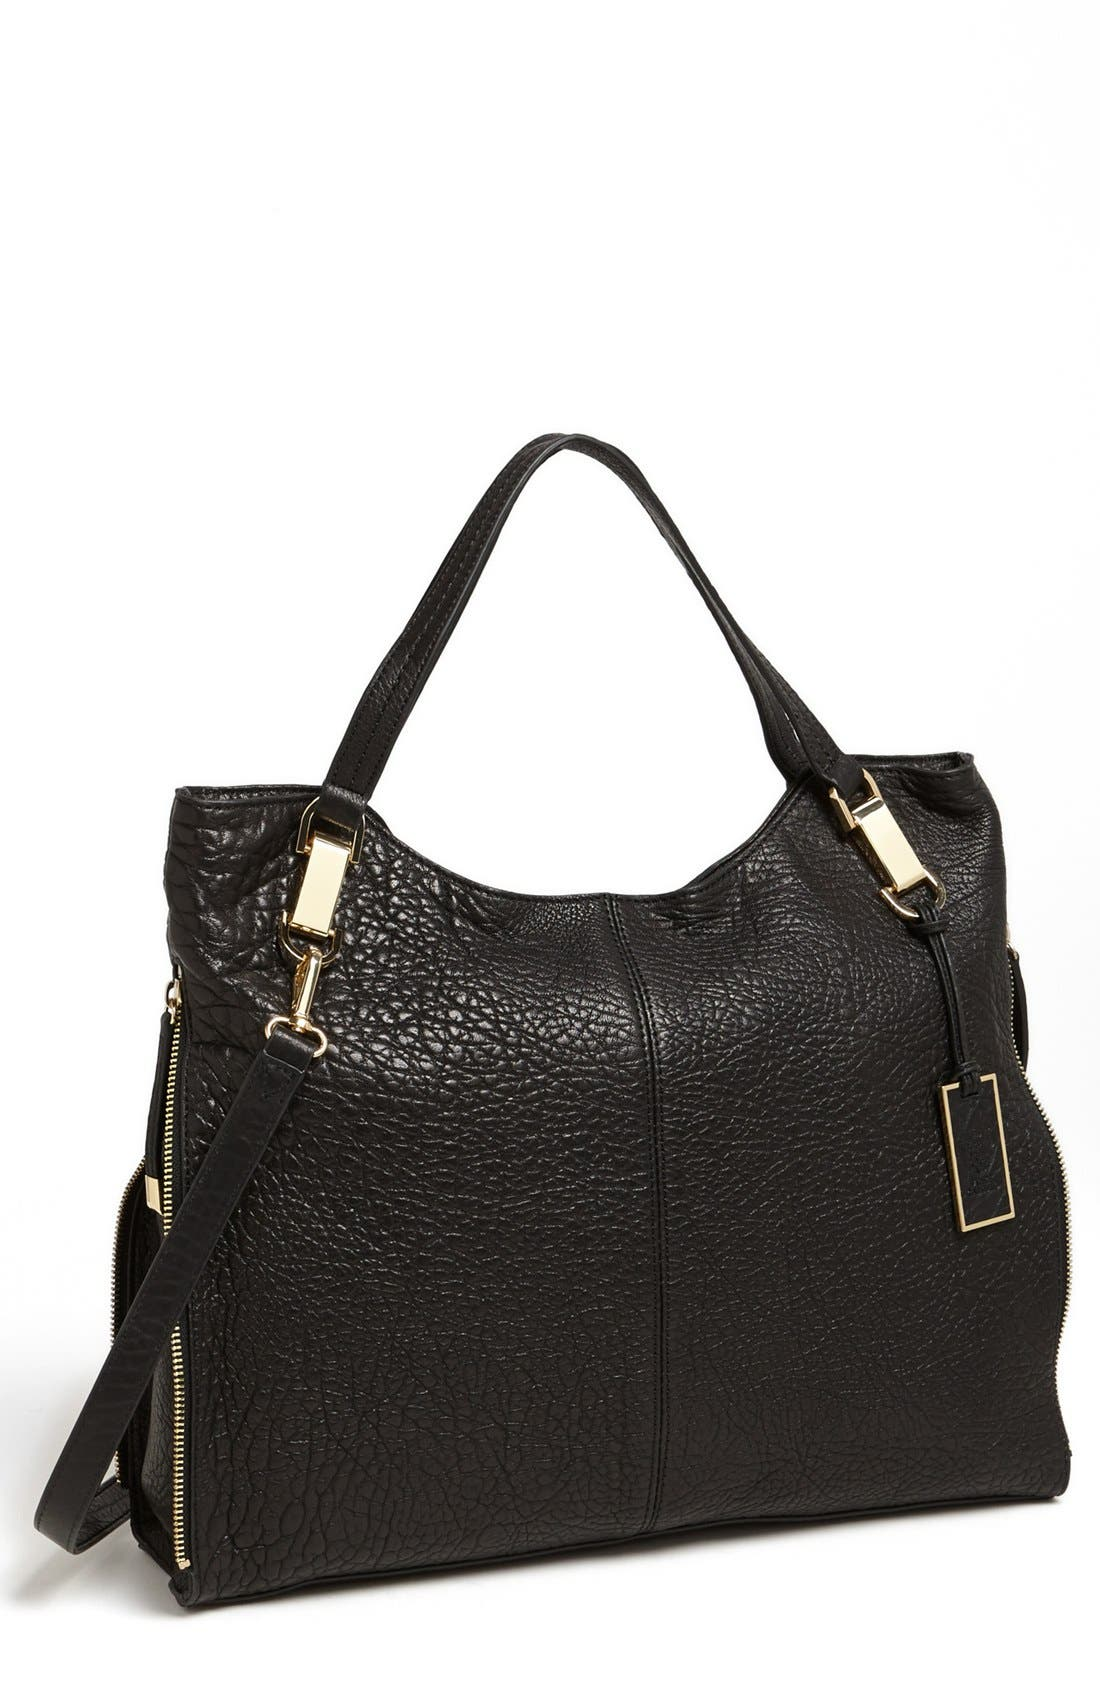 Main Image - Vince Camuto 'Riley' Leather Tote